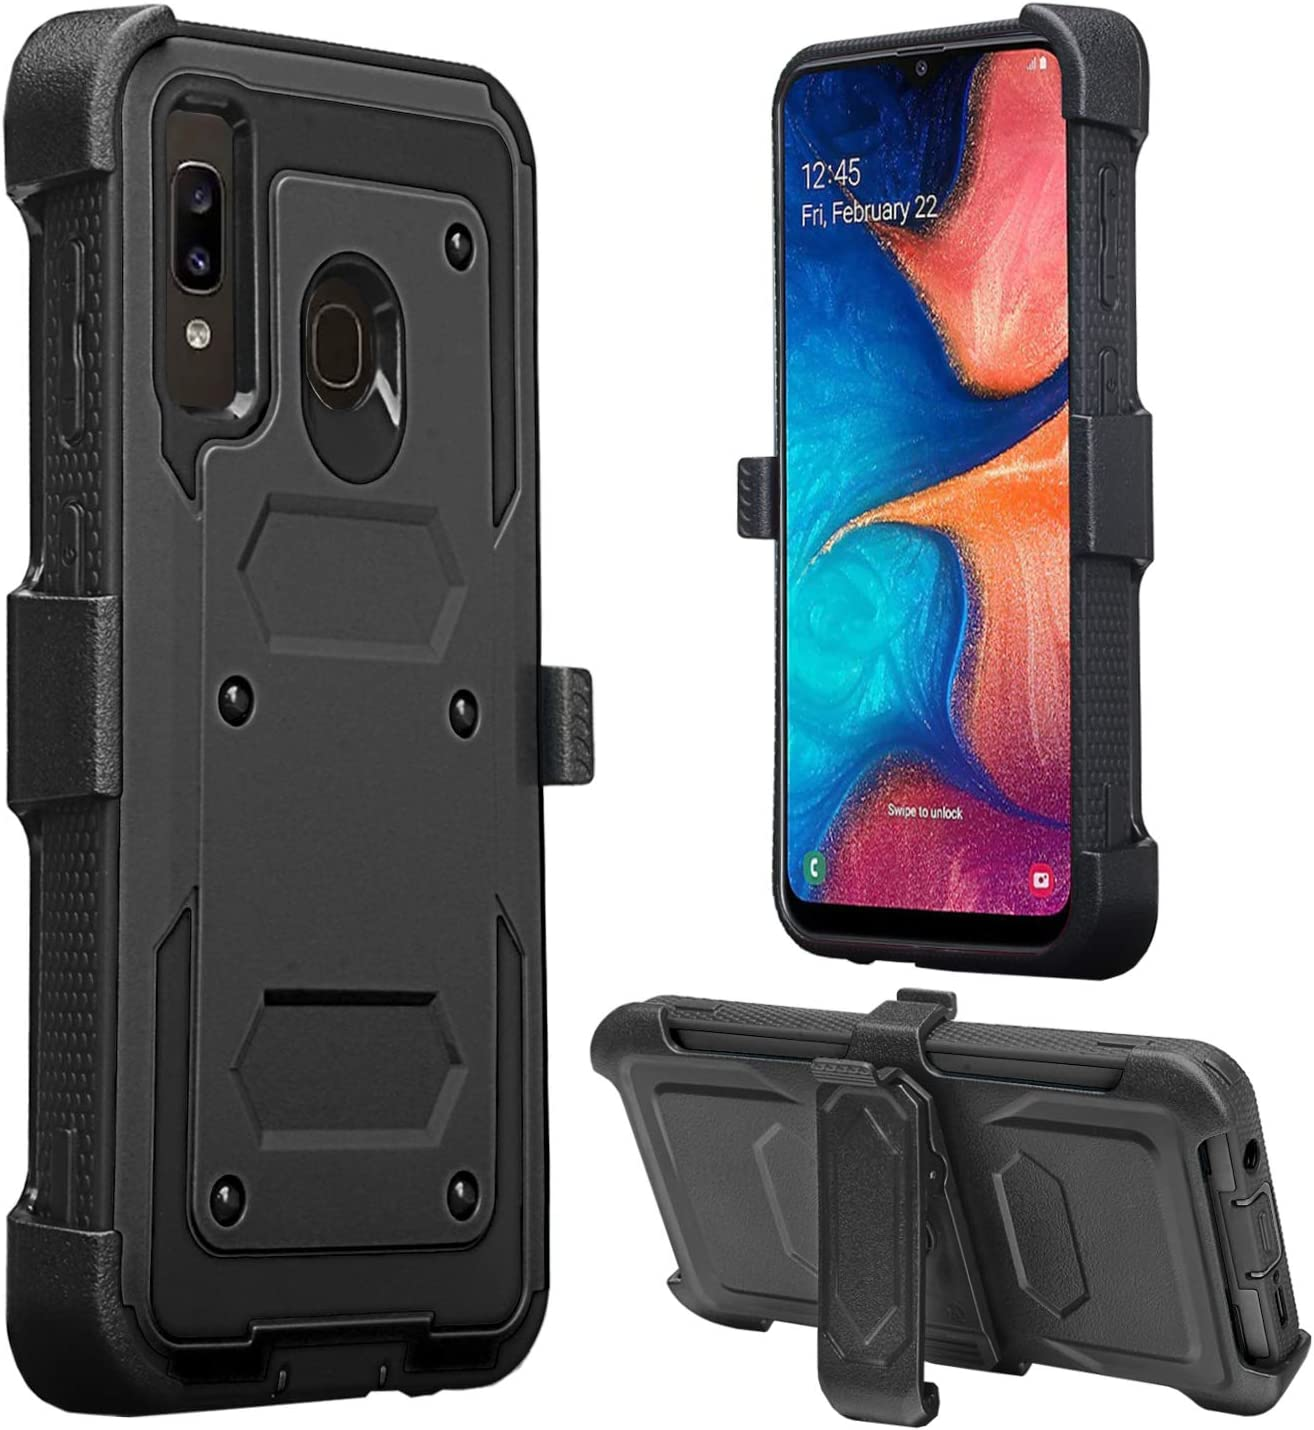 GW Case for Galaxy A20 / A30 Belt Clip Holster Kickstand Shock Proof Phone Case [Built in Screen Protector] Compatible for Samsung Galaxy A20/A30/A205U Cases - Black